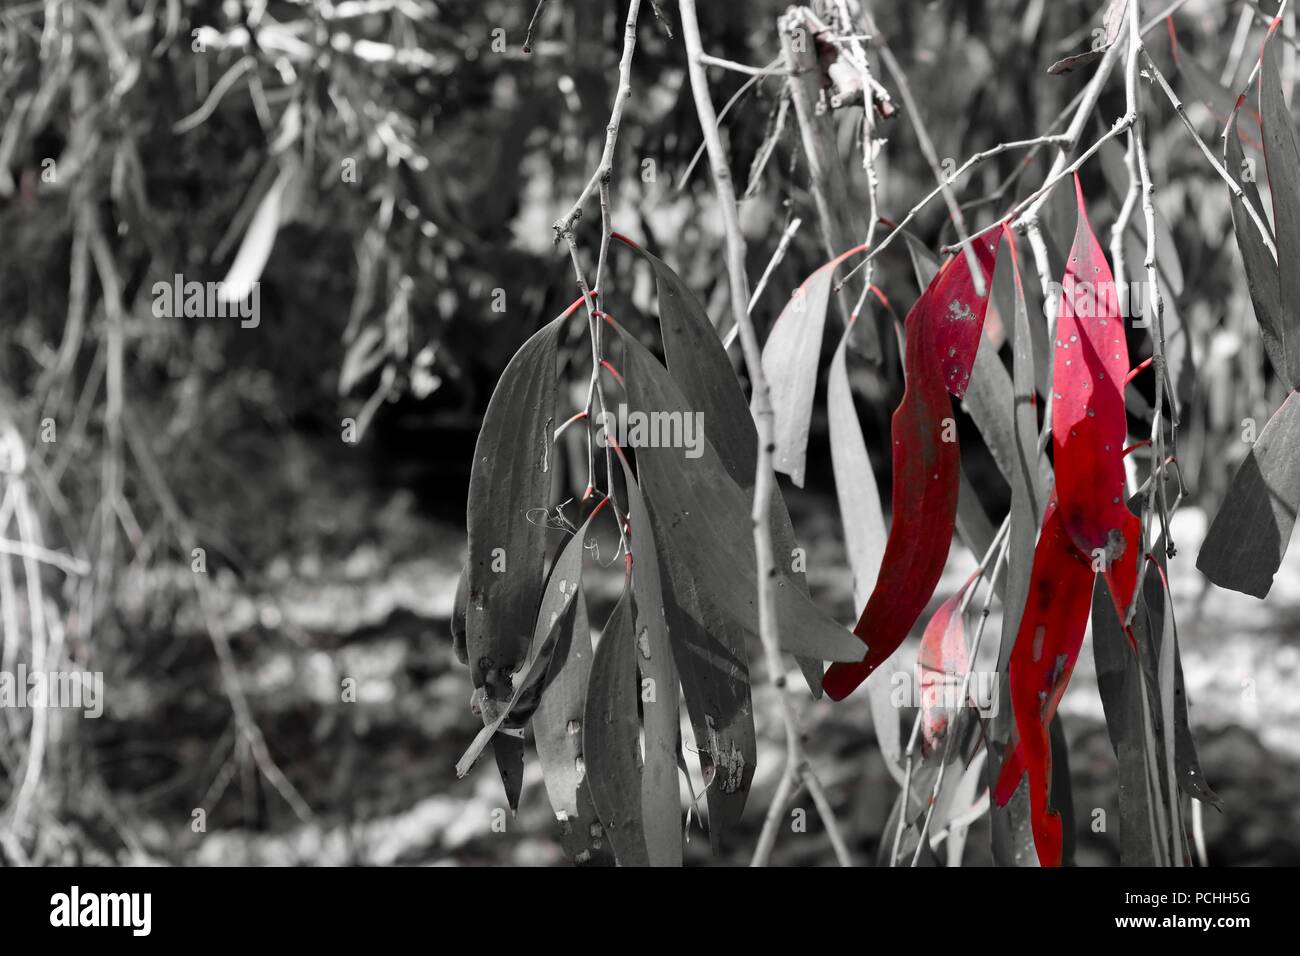 Gum leaves photographed using the red filter on a fujifilm x100f camera, Townsville, Queensland, Australia - Stock Image